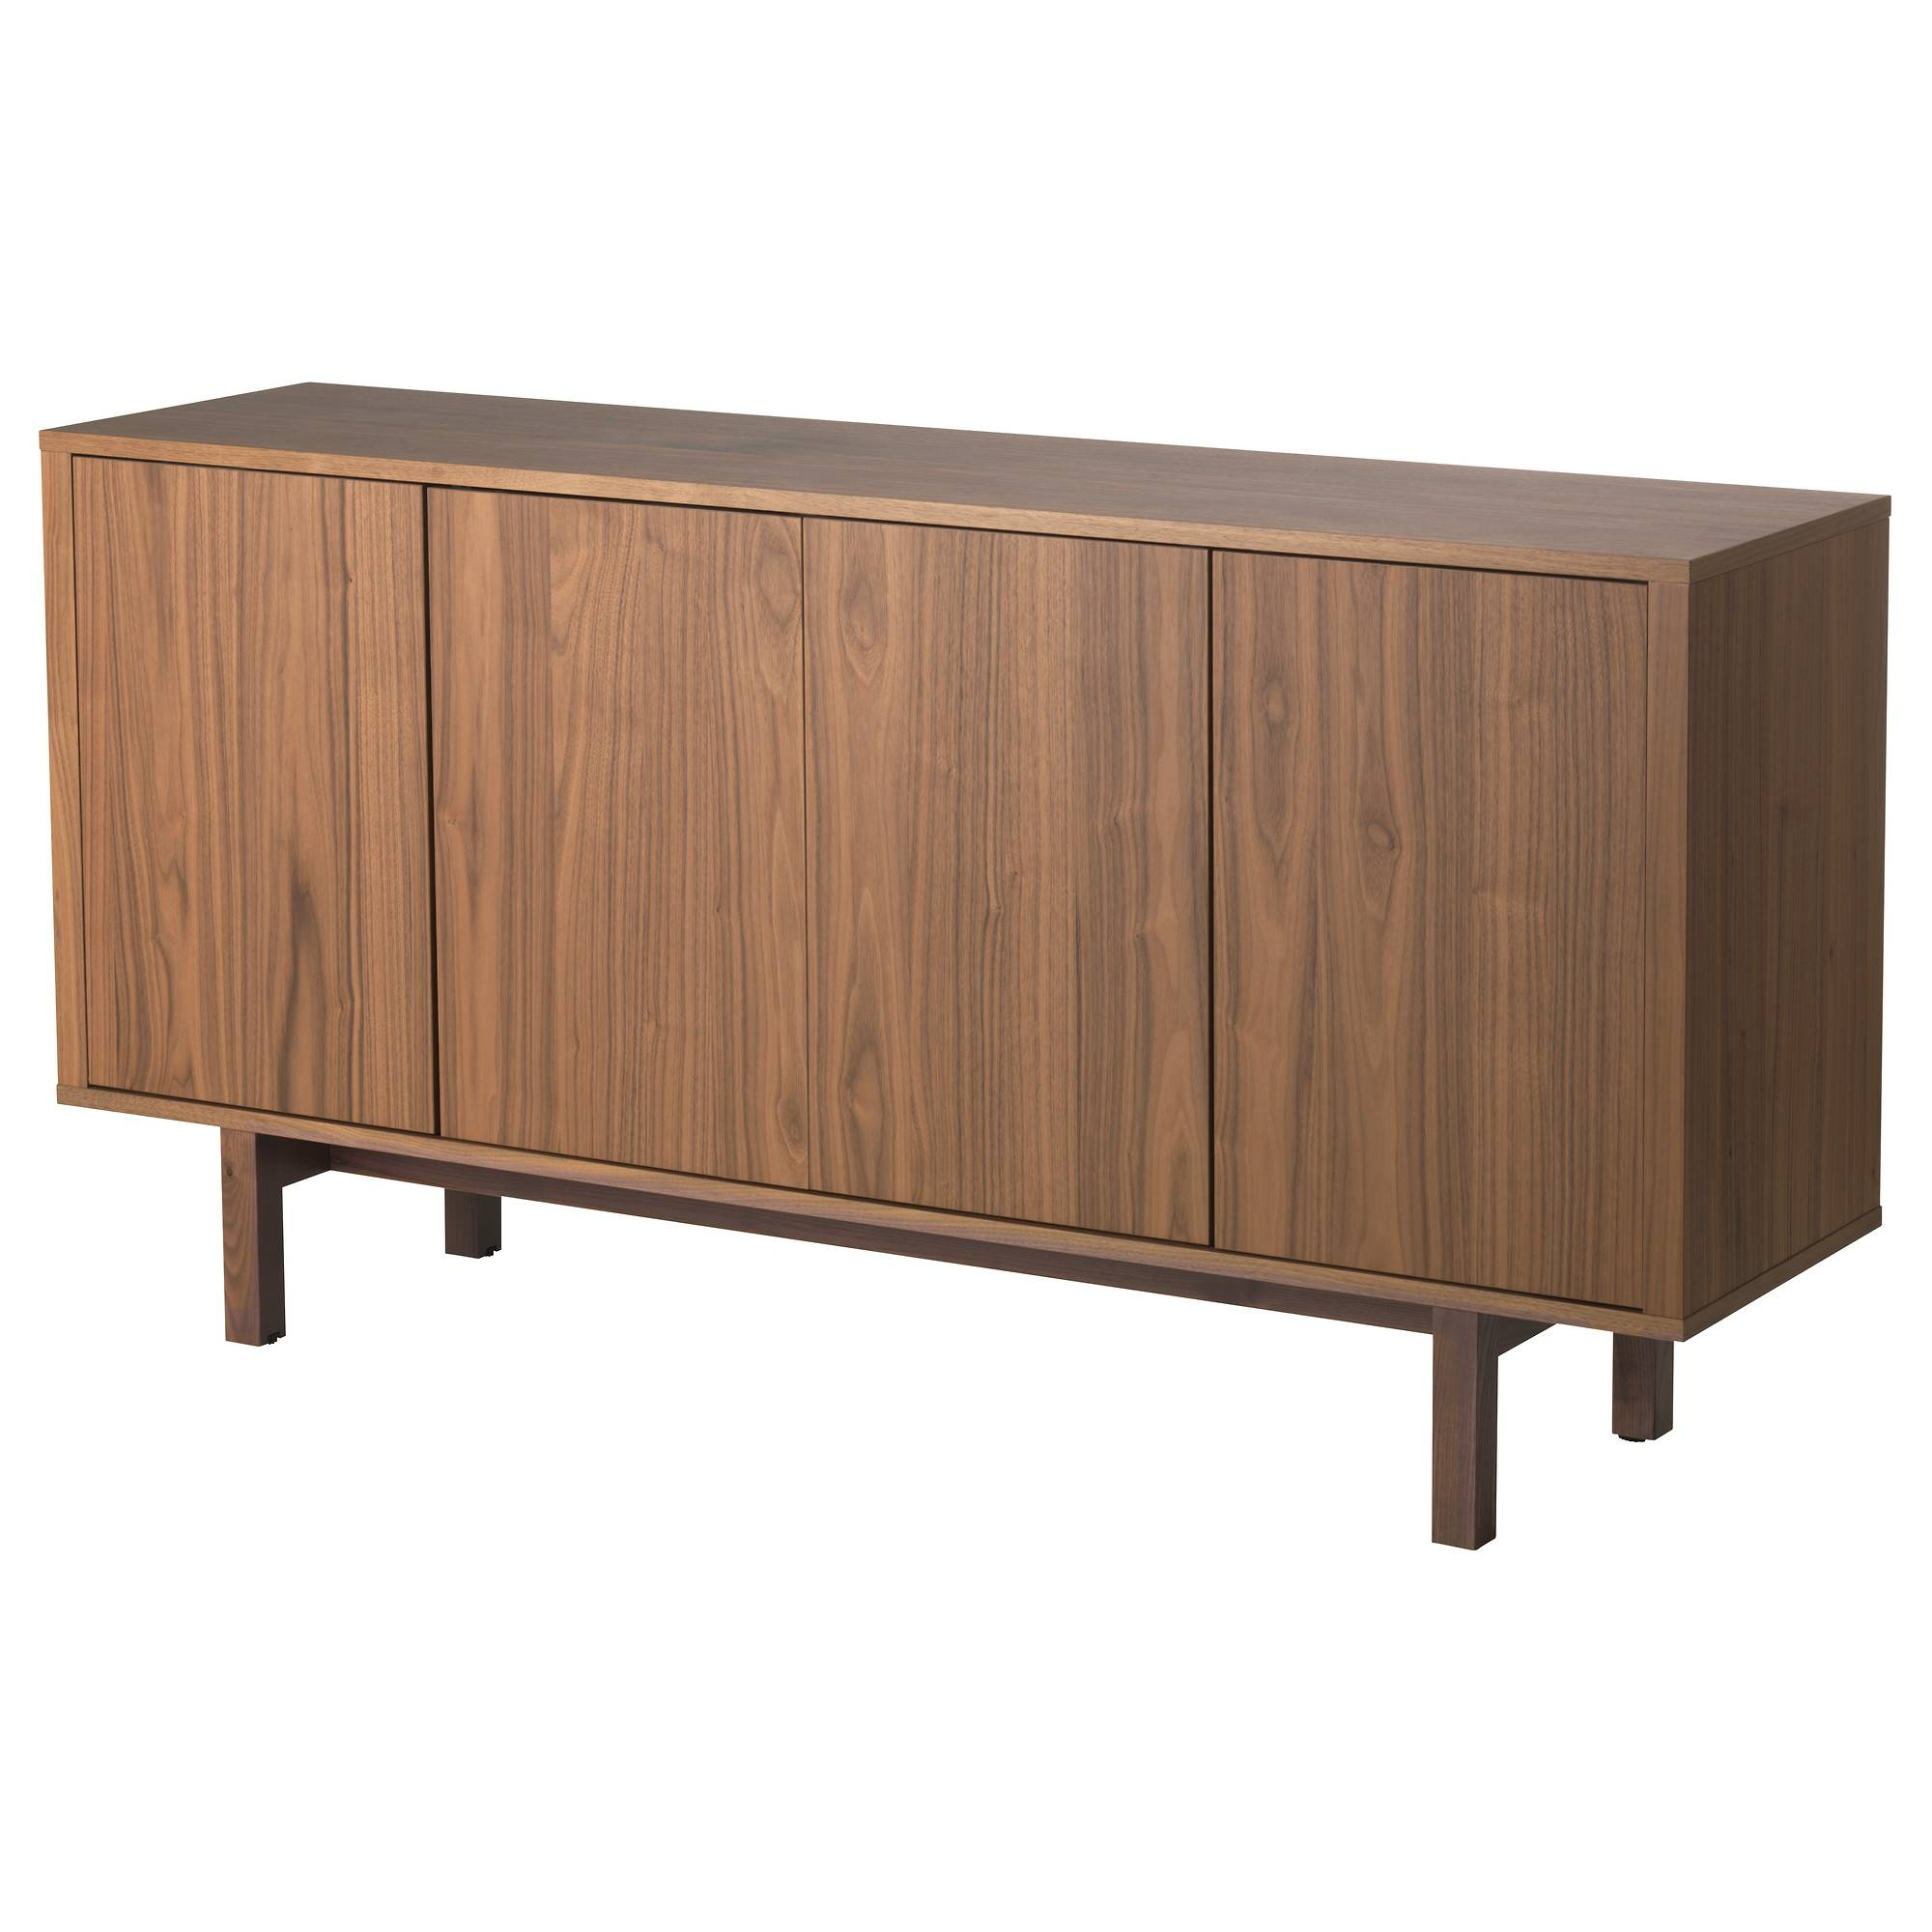 Buffet Tables & Sideboards – Ikea Within 2018 6 Foot Sideboards (#5 of 15)